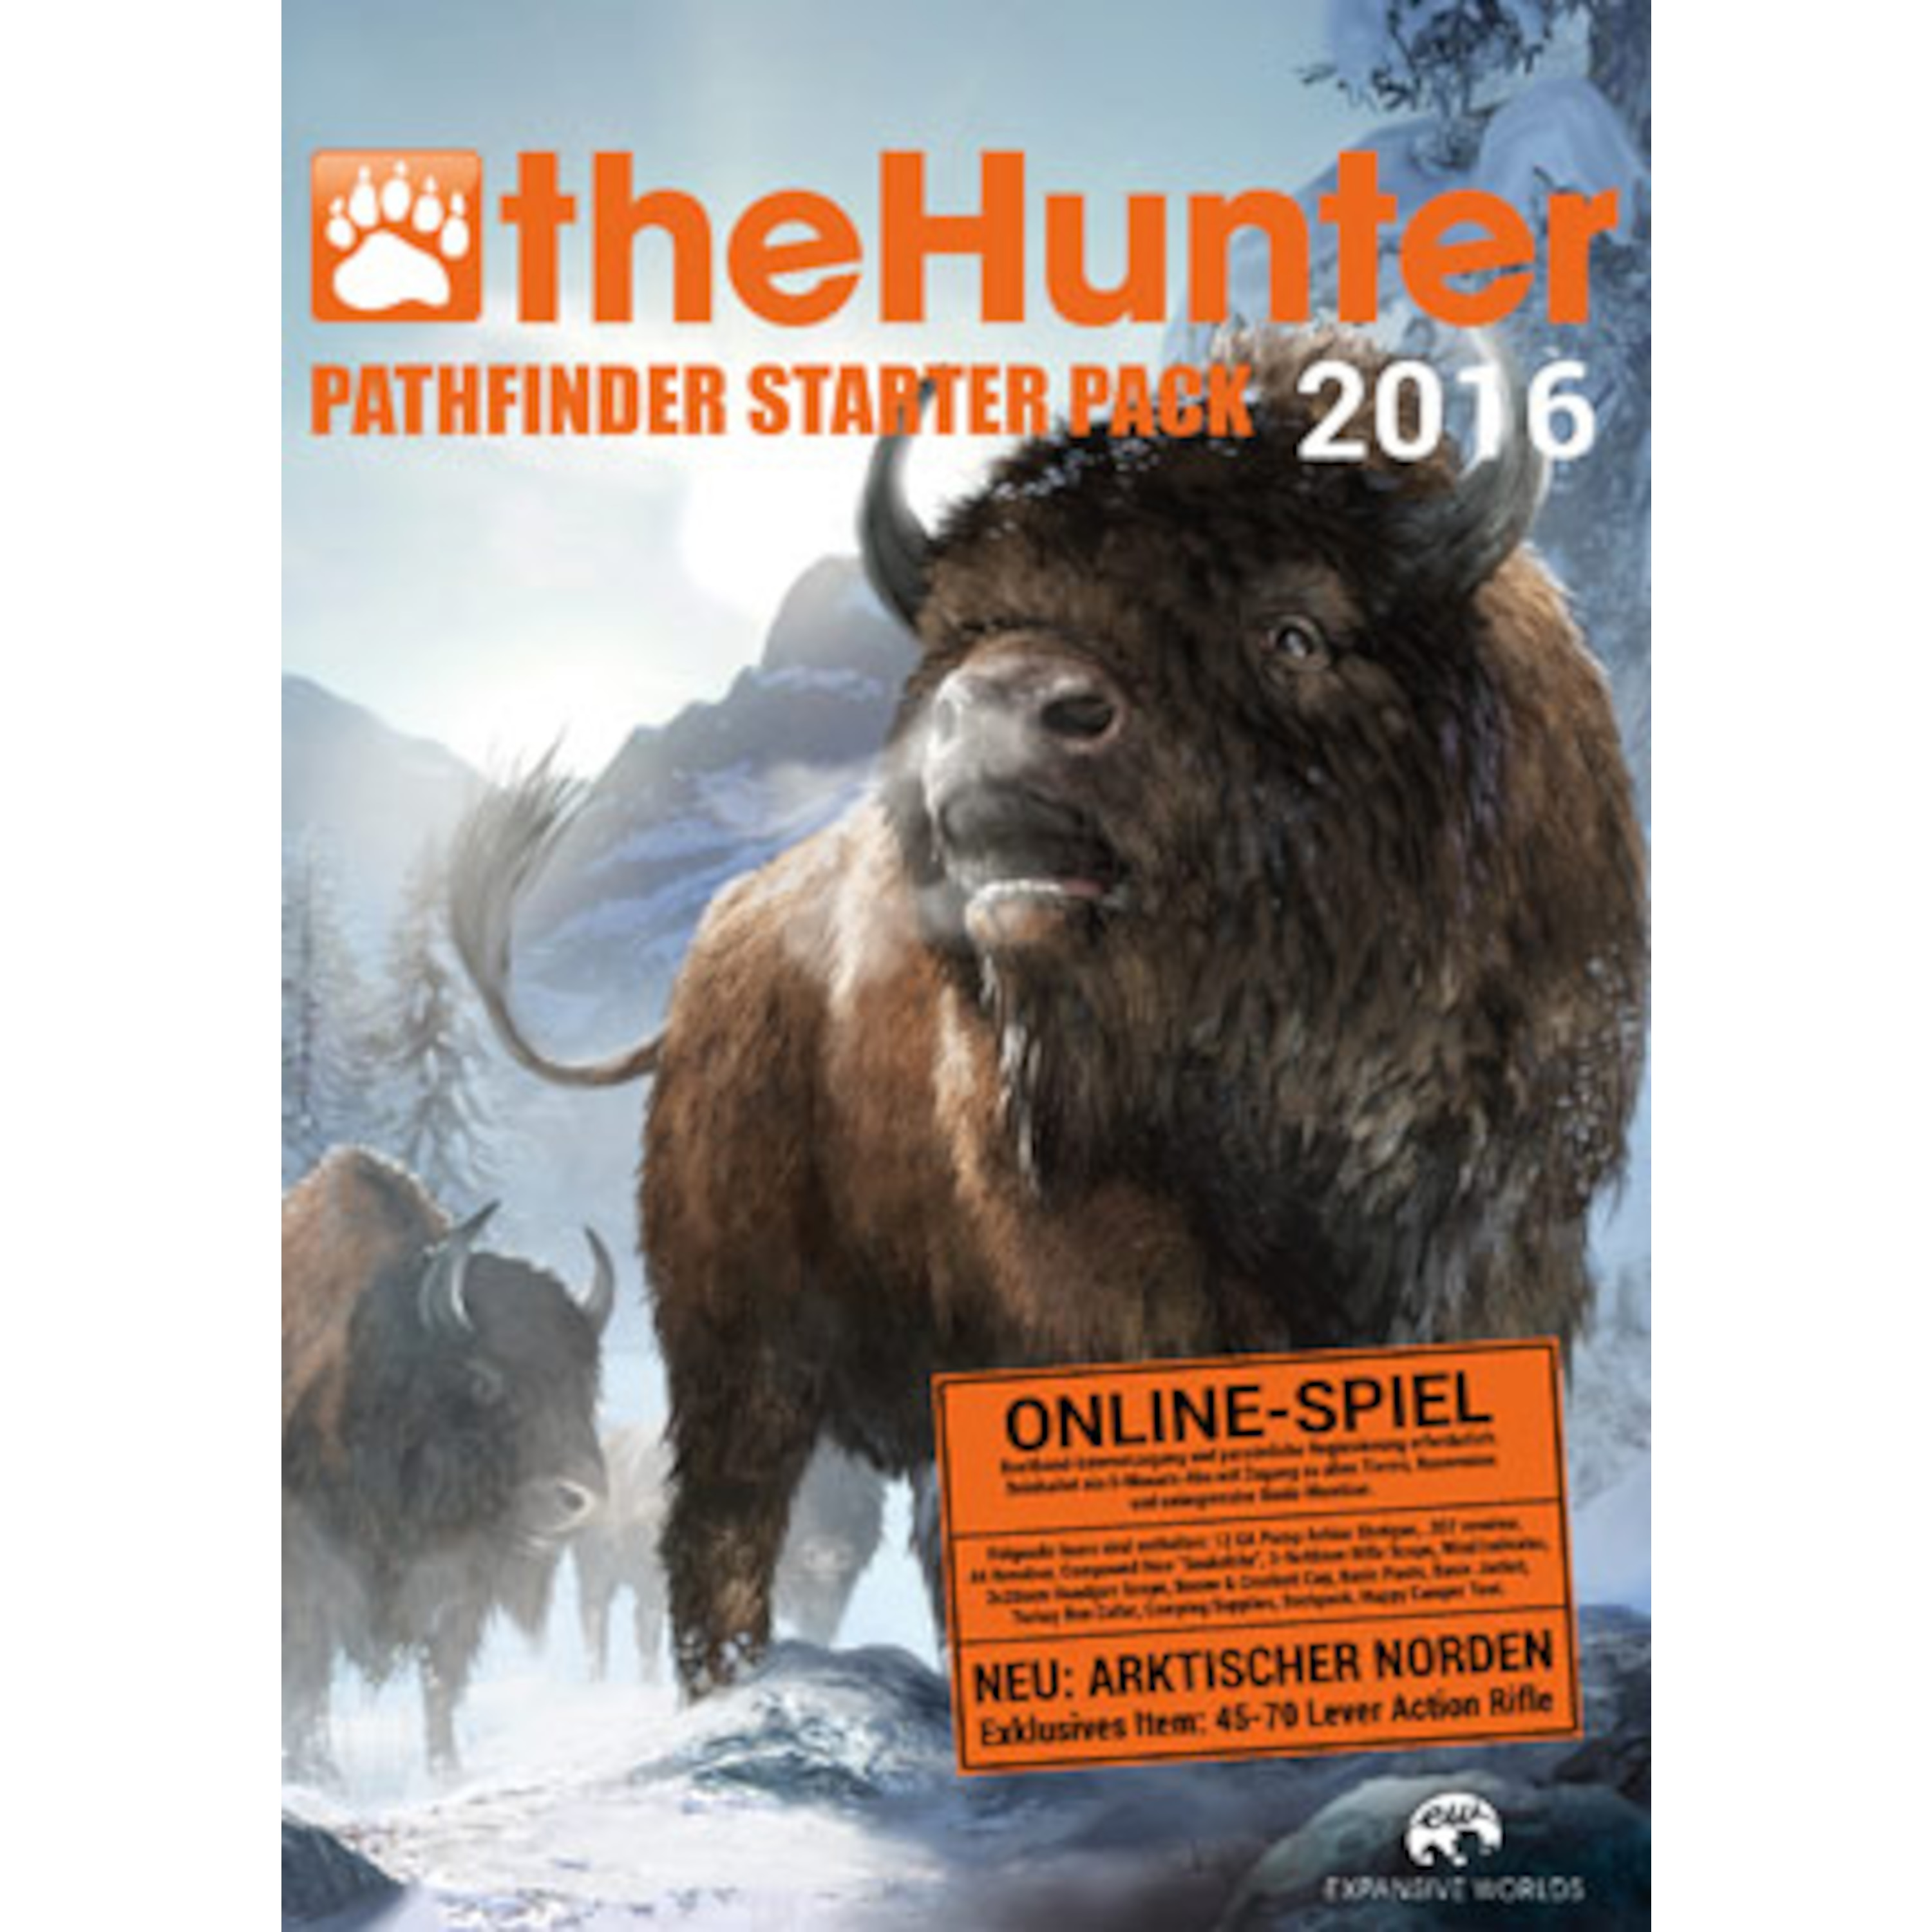 theHunter 2016 Pathfinder Starter-Pack